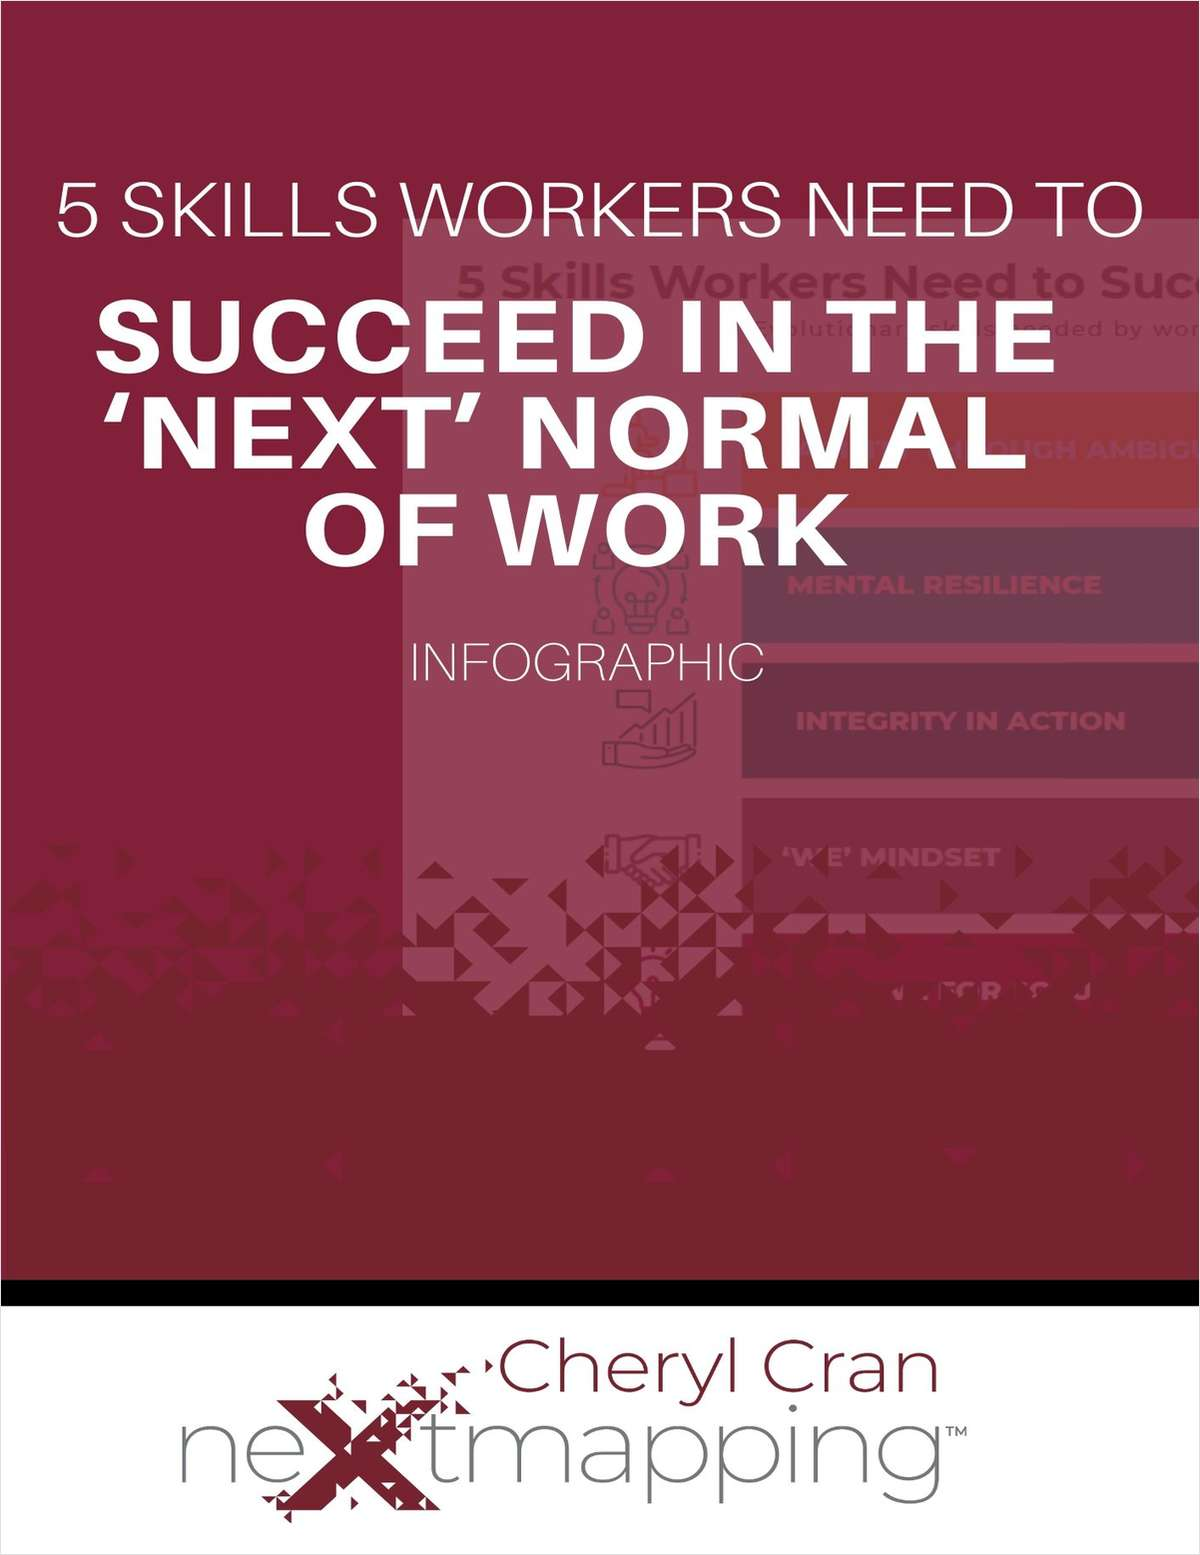 5 Skills Workers Need to Succeed in the 'Next' Normal of Work